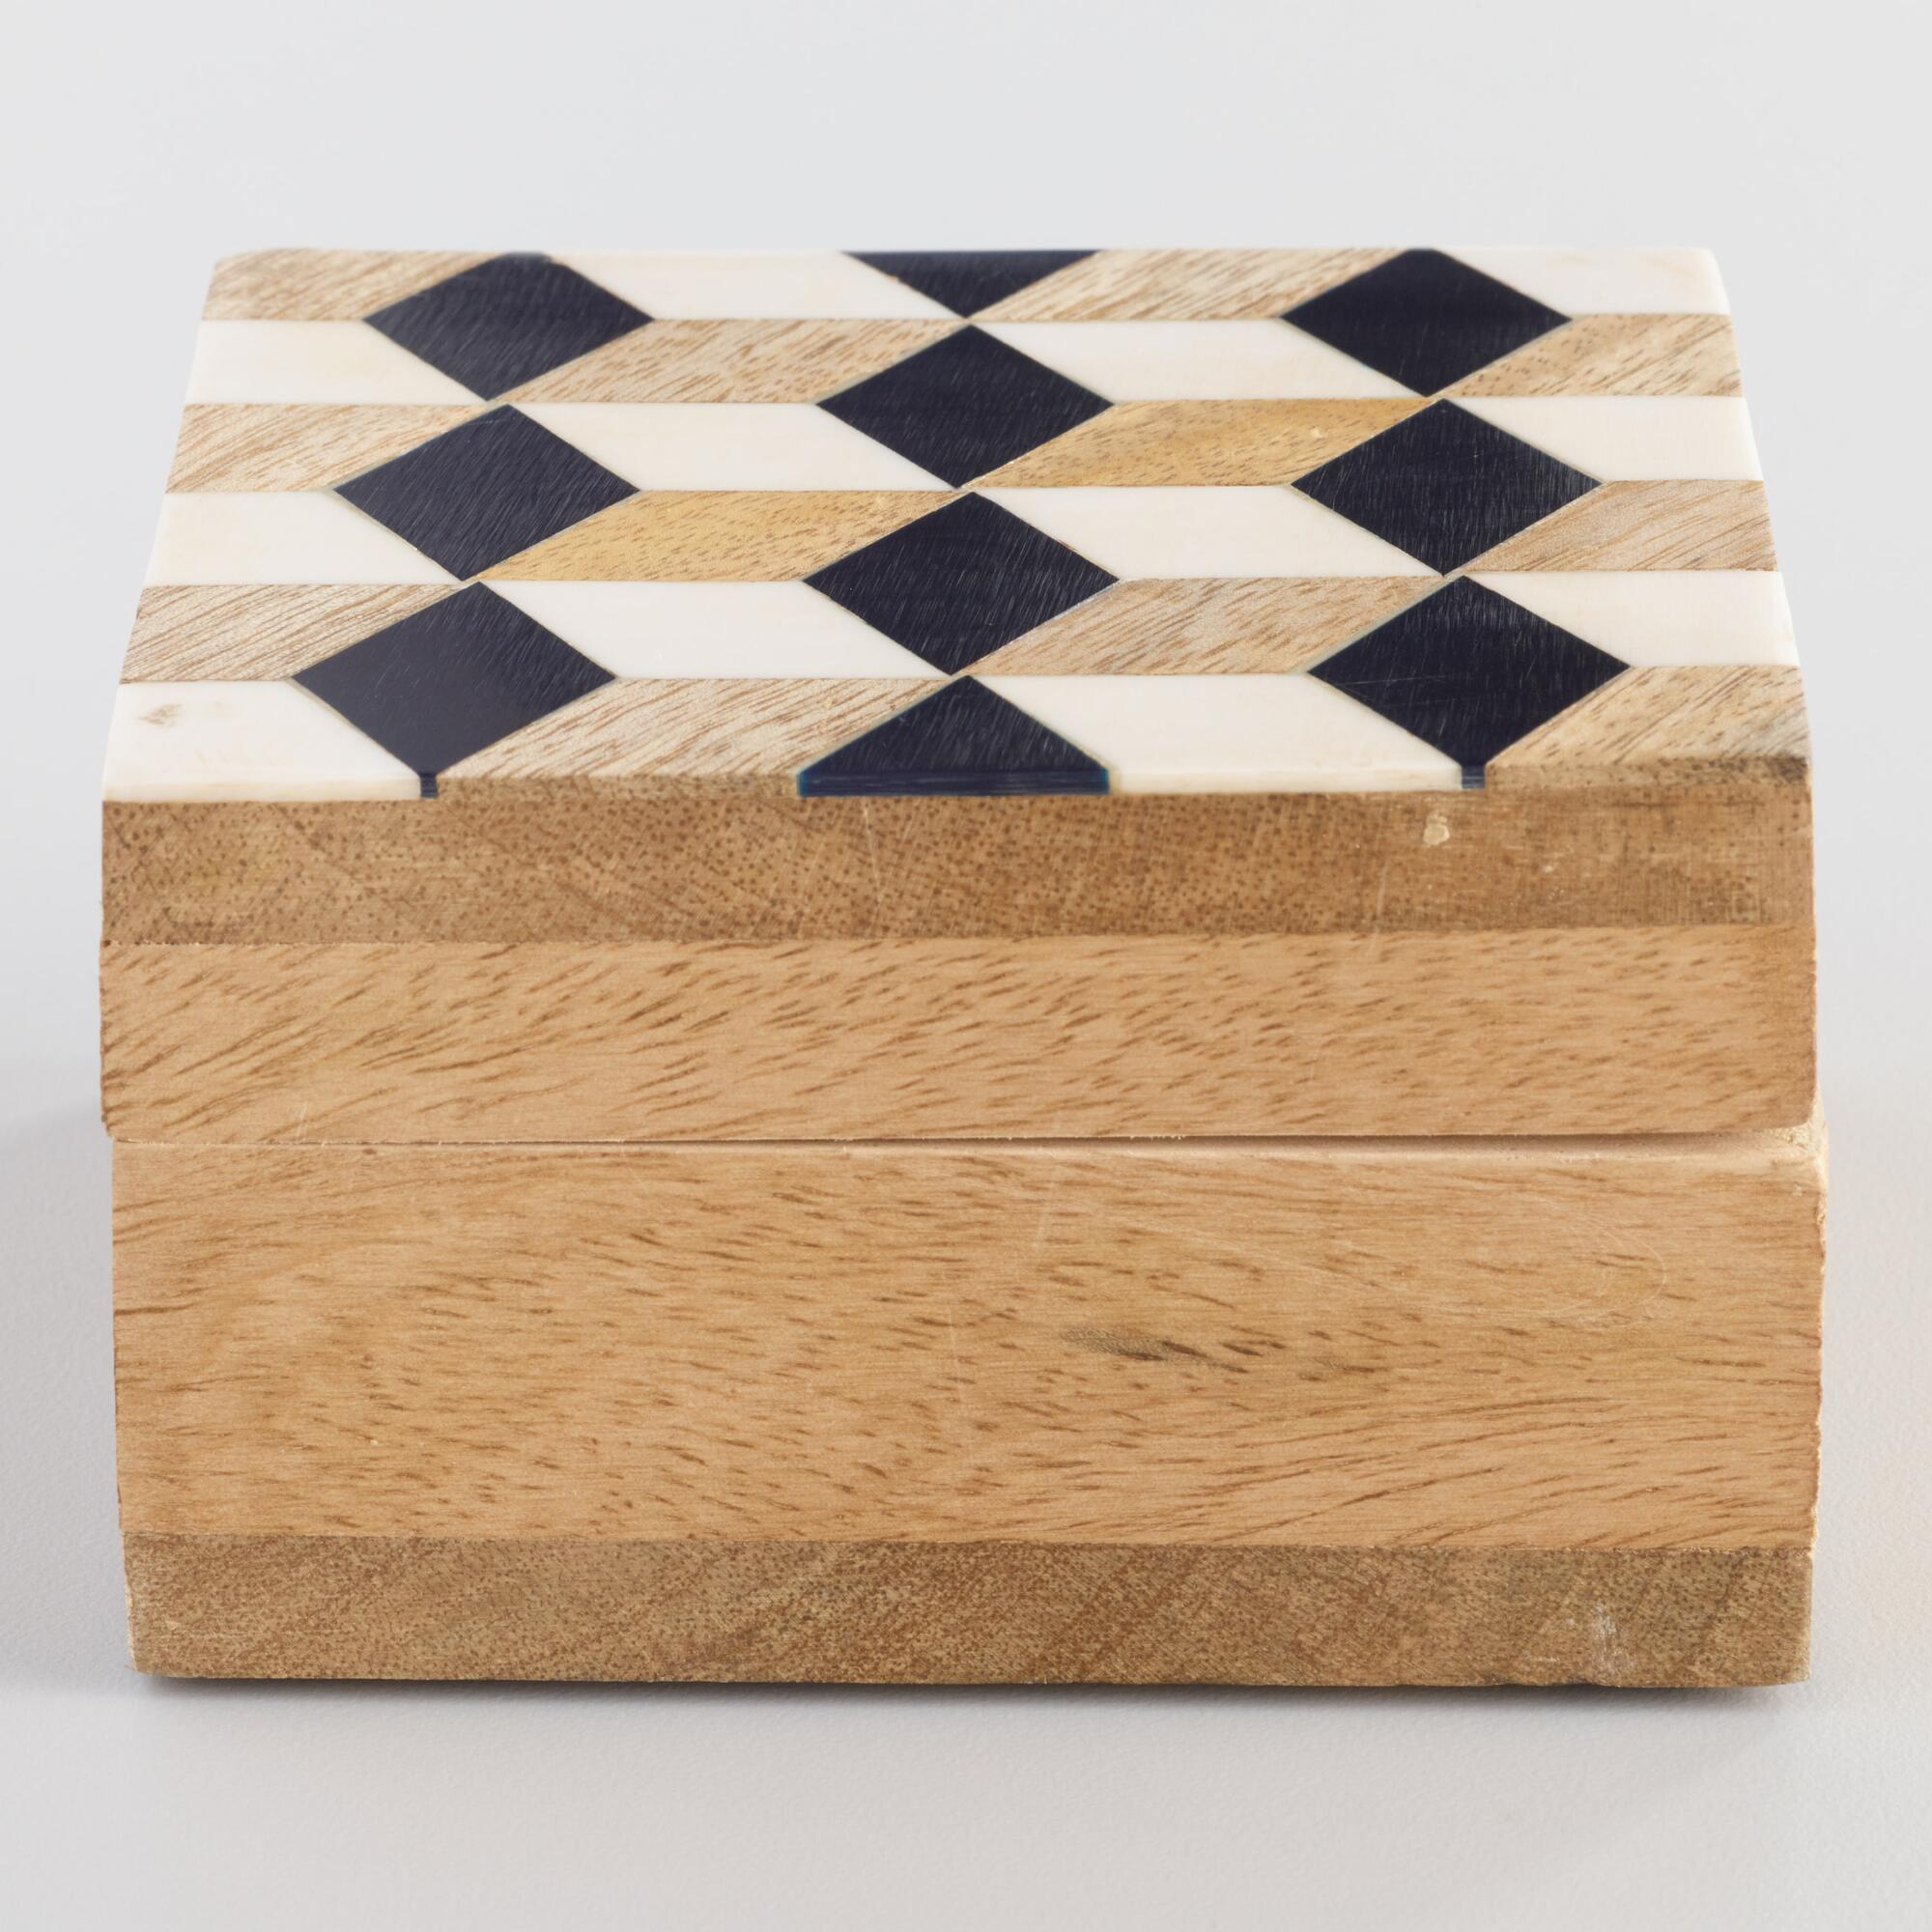 Geometric Cube Resin and Wood Tea Storage Box by World Market